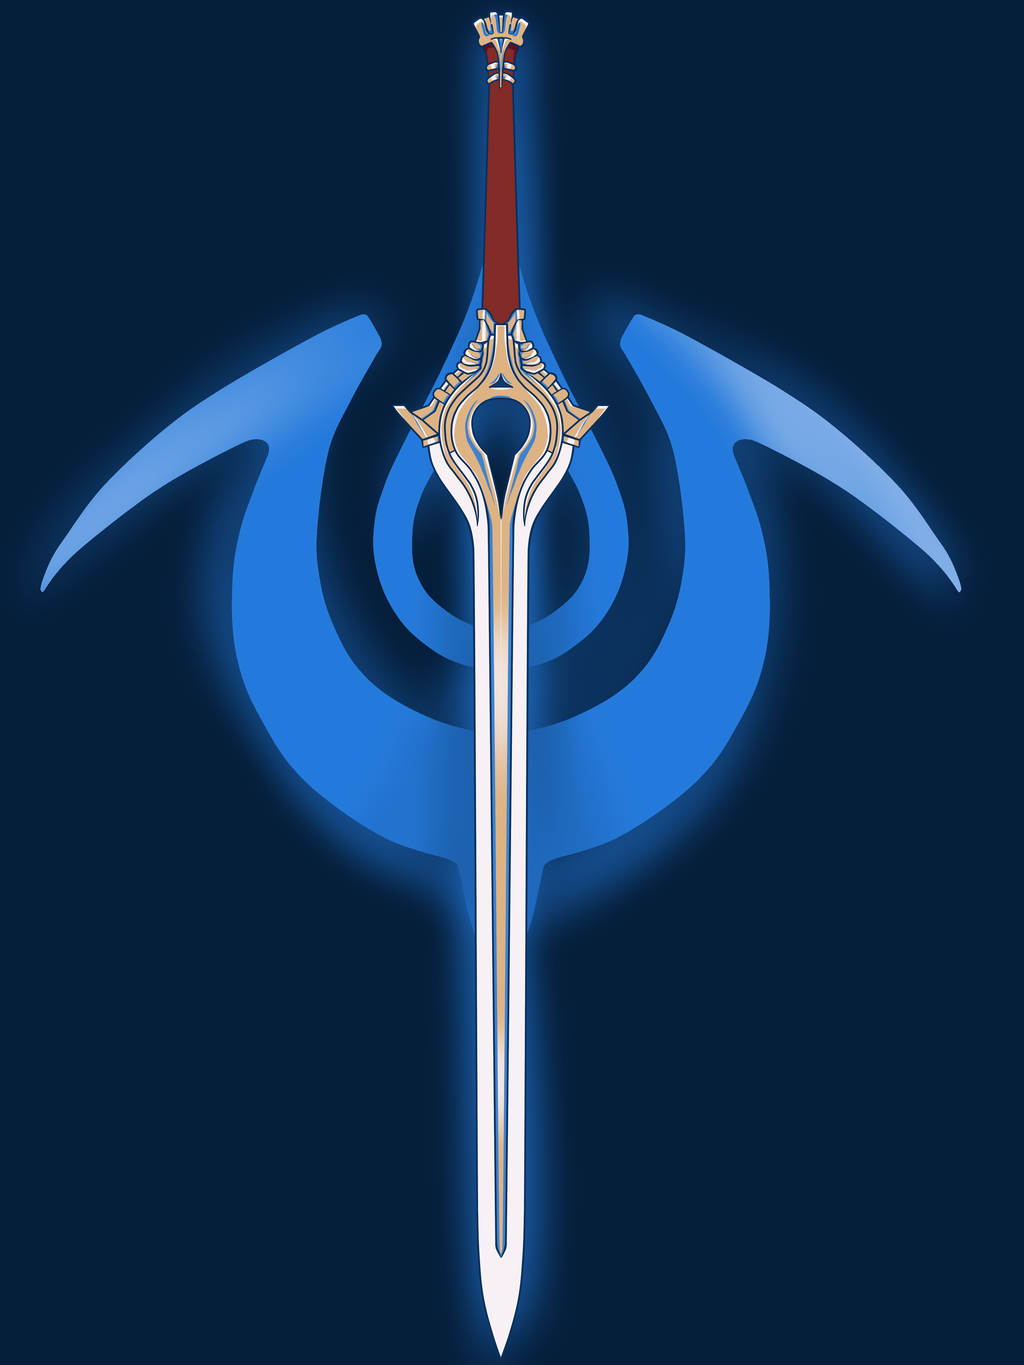 Best 61 Falchion Wallpaper on HipWallpaper Falchion Wallpaper 1024x1365